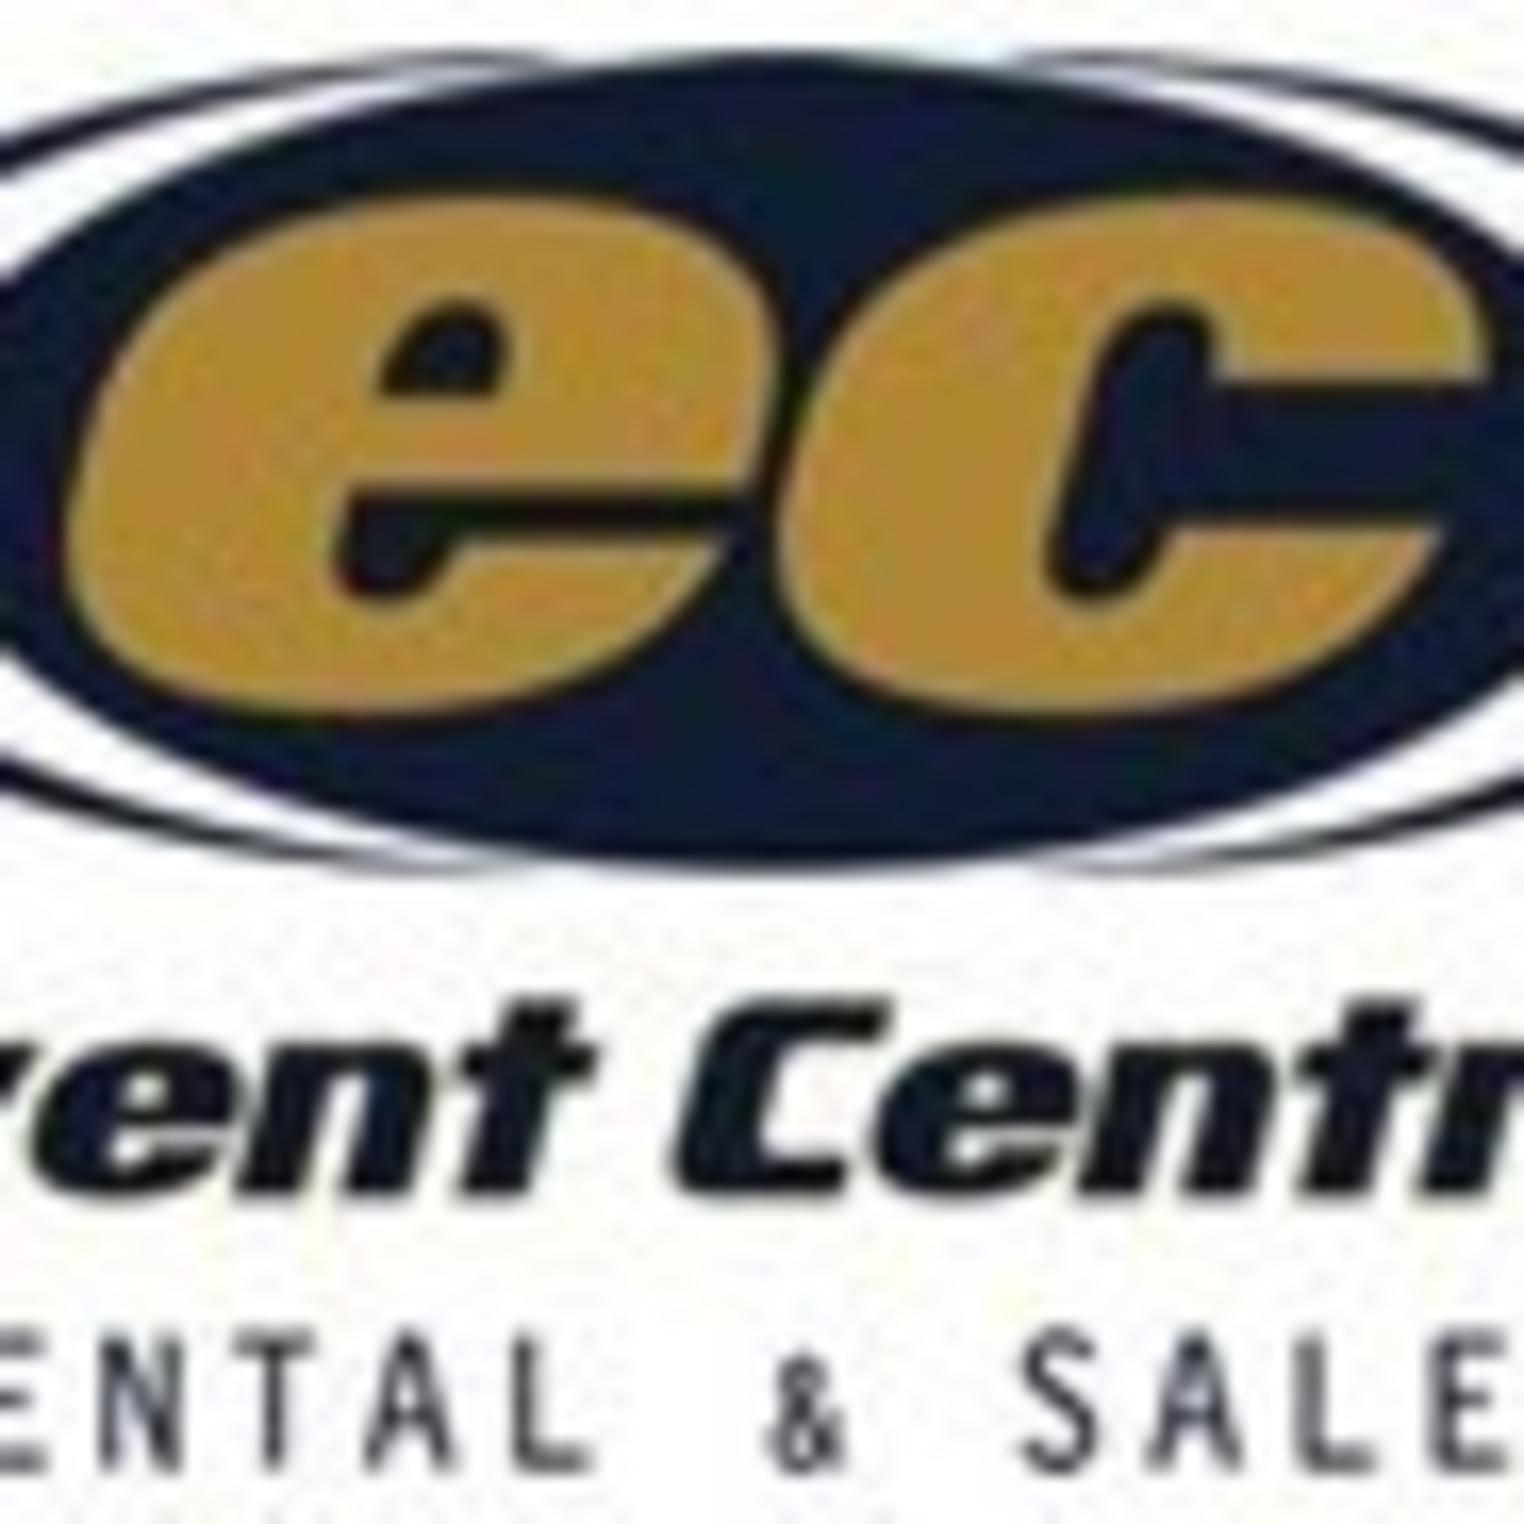 Event Central Rental and Sales